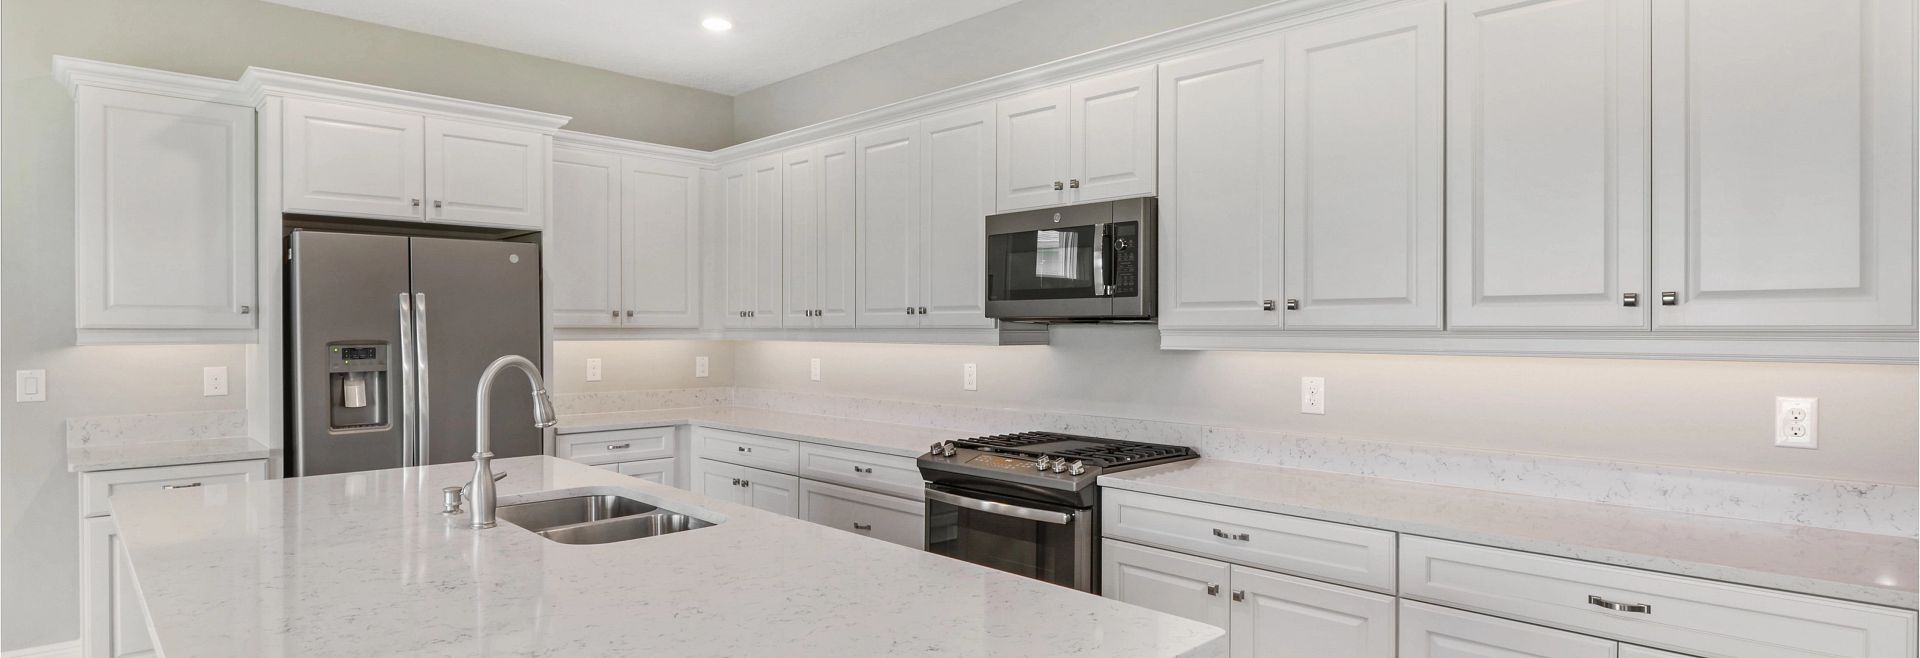 Trilogy at Ocala Preserve Quick Move In Home Liberty HS 163 Kitchen